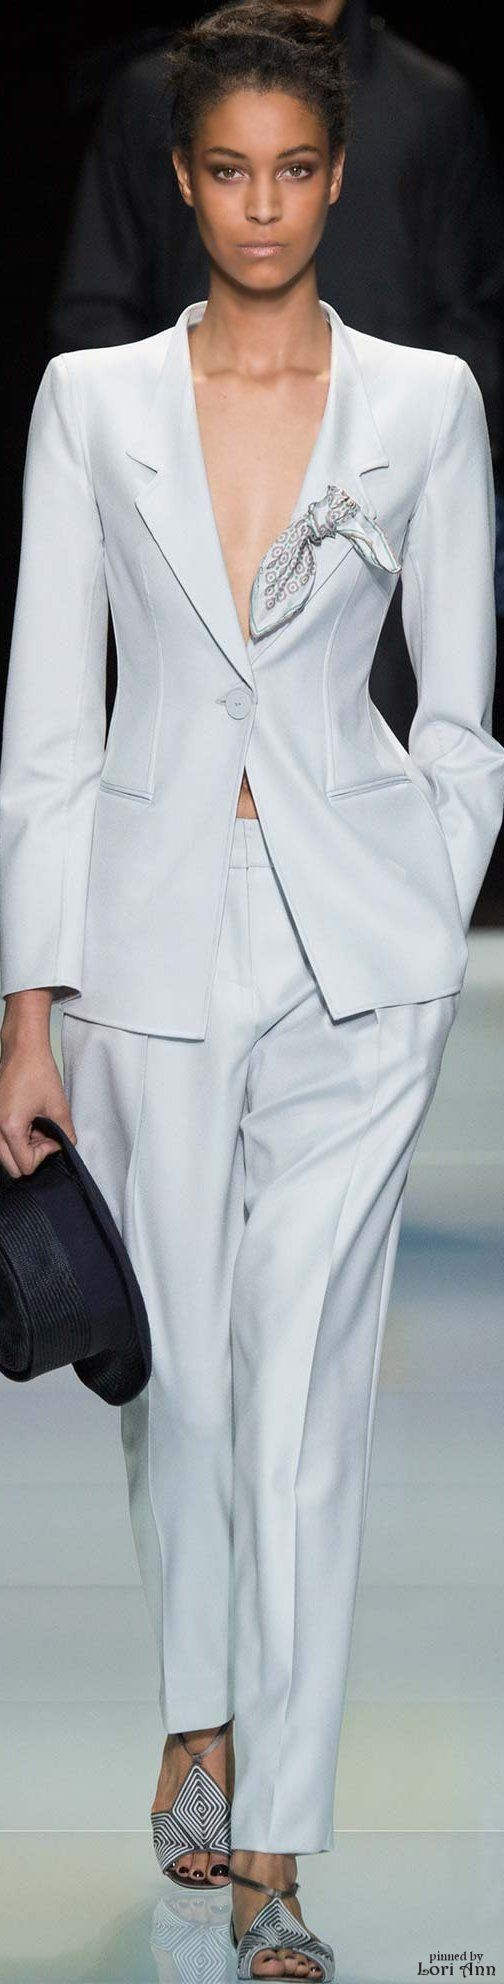 127 best suits images on Pinterest | Work outfits, Feminine fashion ...